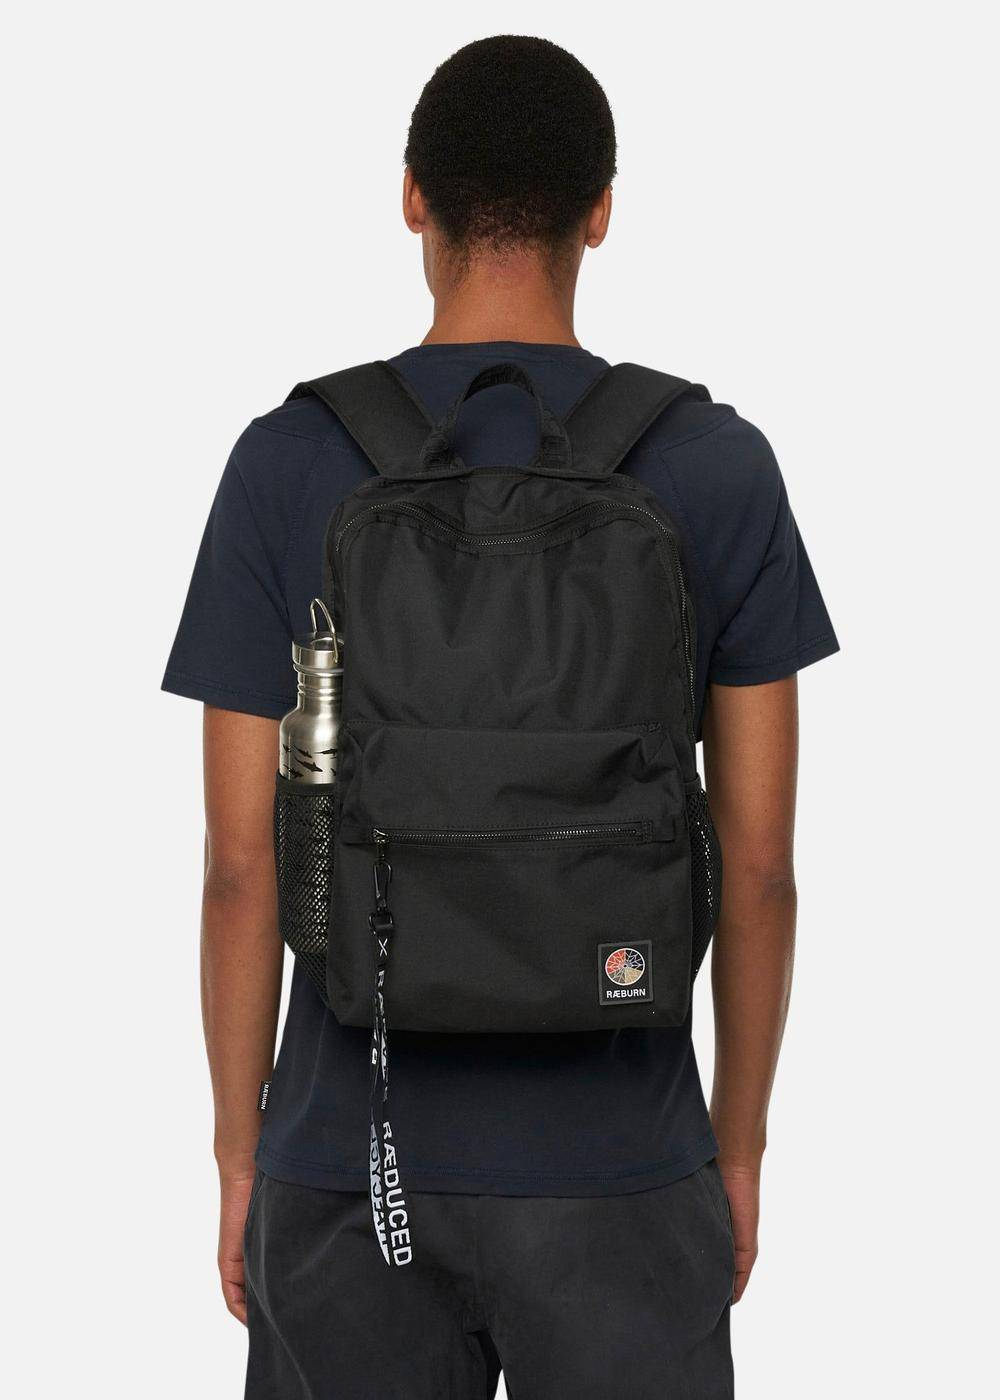 raeburn sustainable vegan cheap backpack